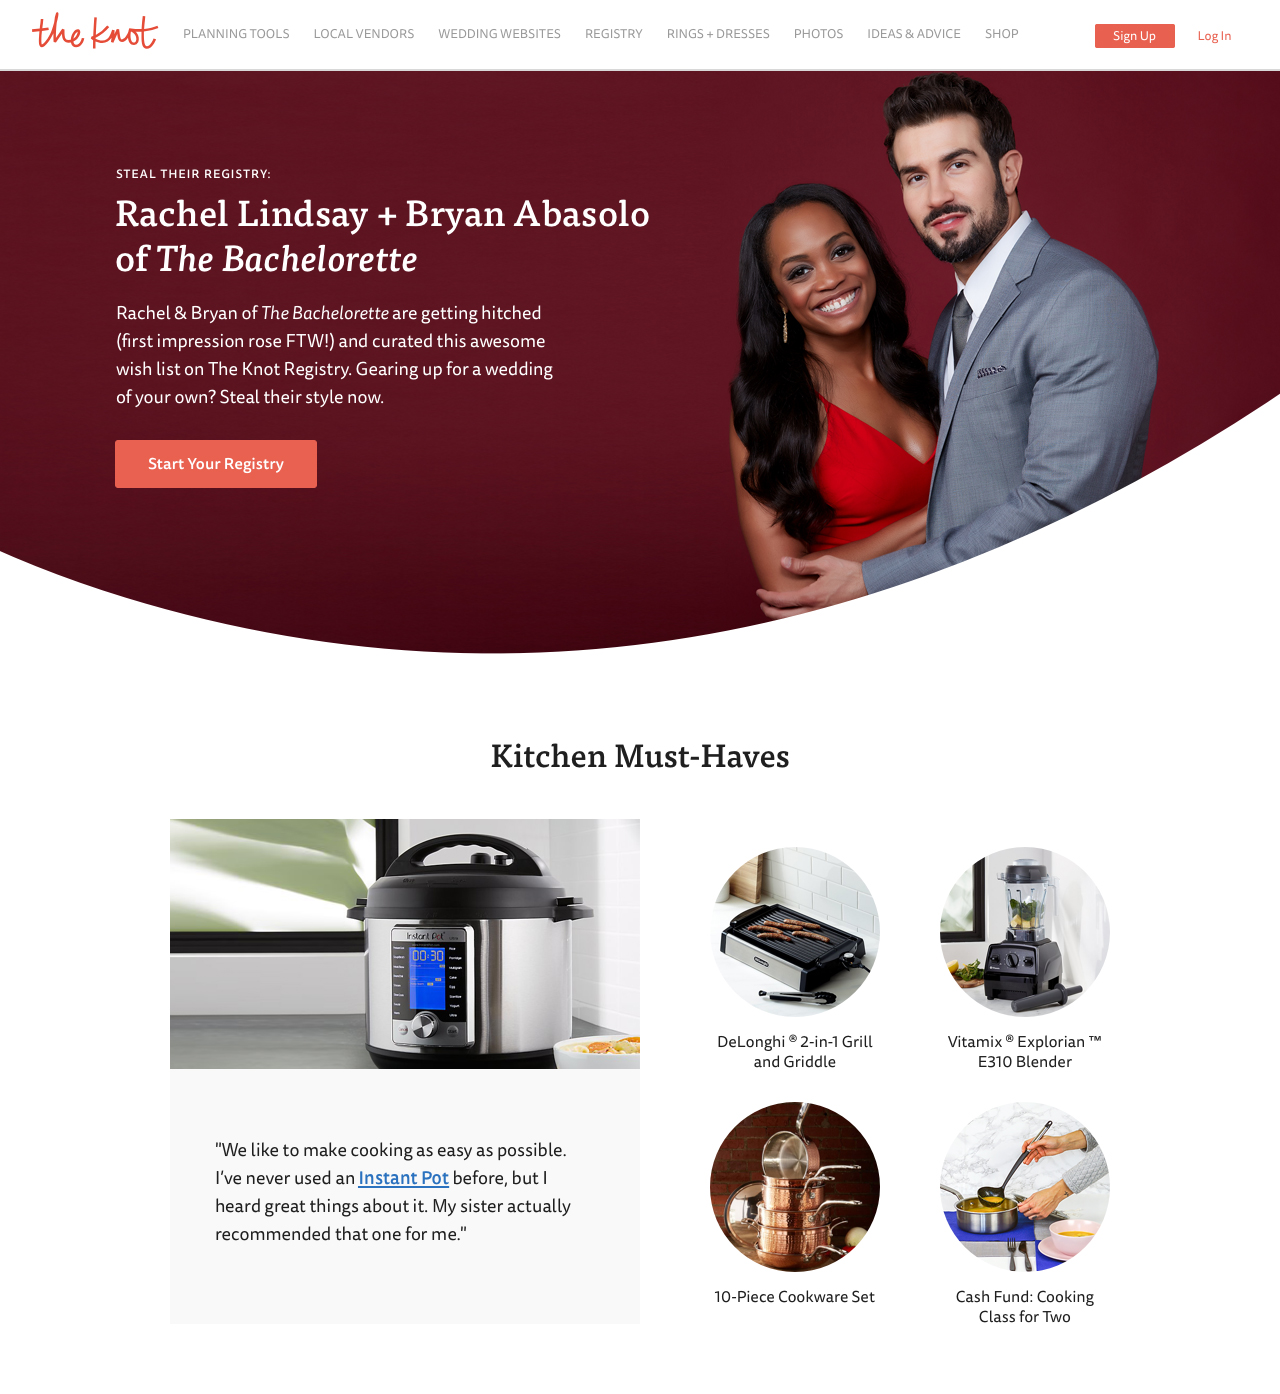 Rachel-Lindsay-wedding-registry